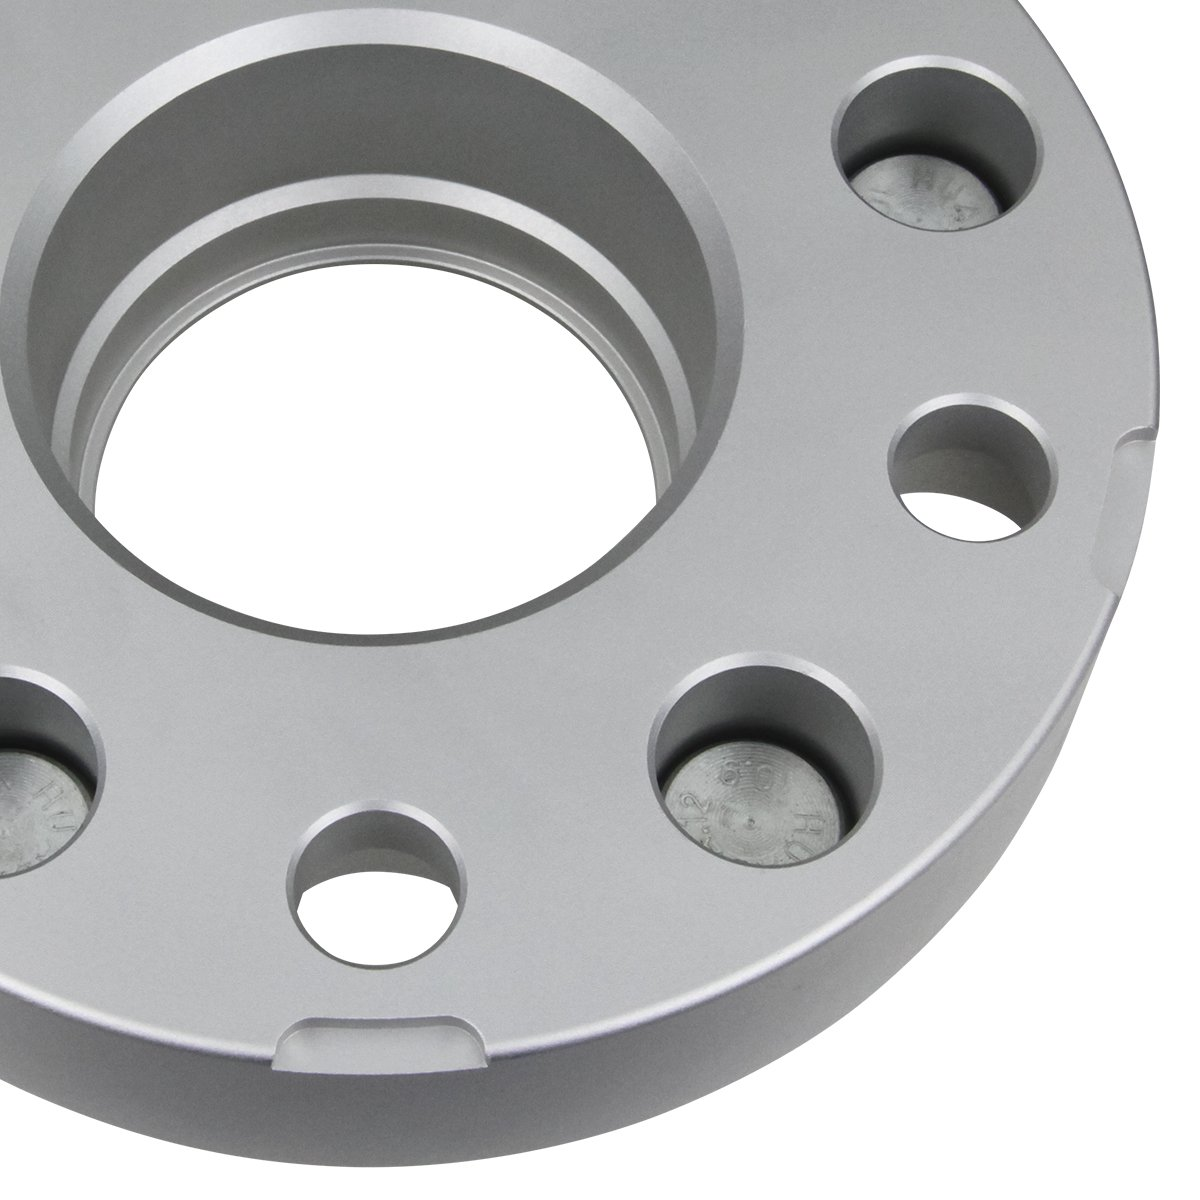 Supreme Suspensions - (4pc) 1997-2006 Jeep Wrangler TJ 2'' Hub Centric Wheel Spacers 5x4.5'' (5x114.3mm) with Lip + 1/2''x20 Studs [Silver] by Supreme Suspensions (Image #4)